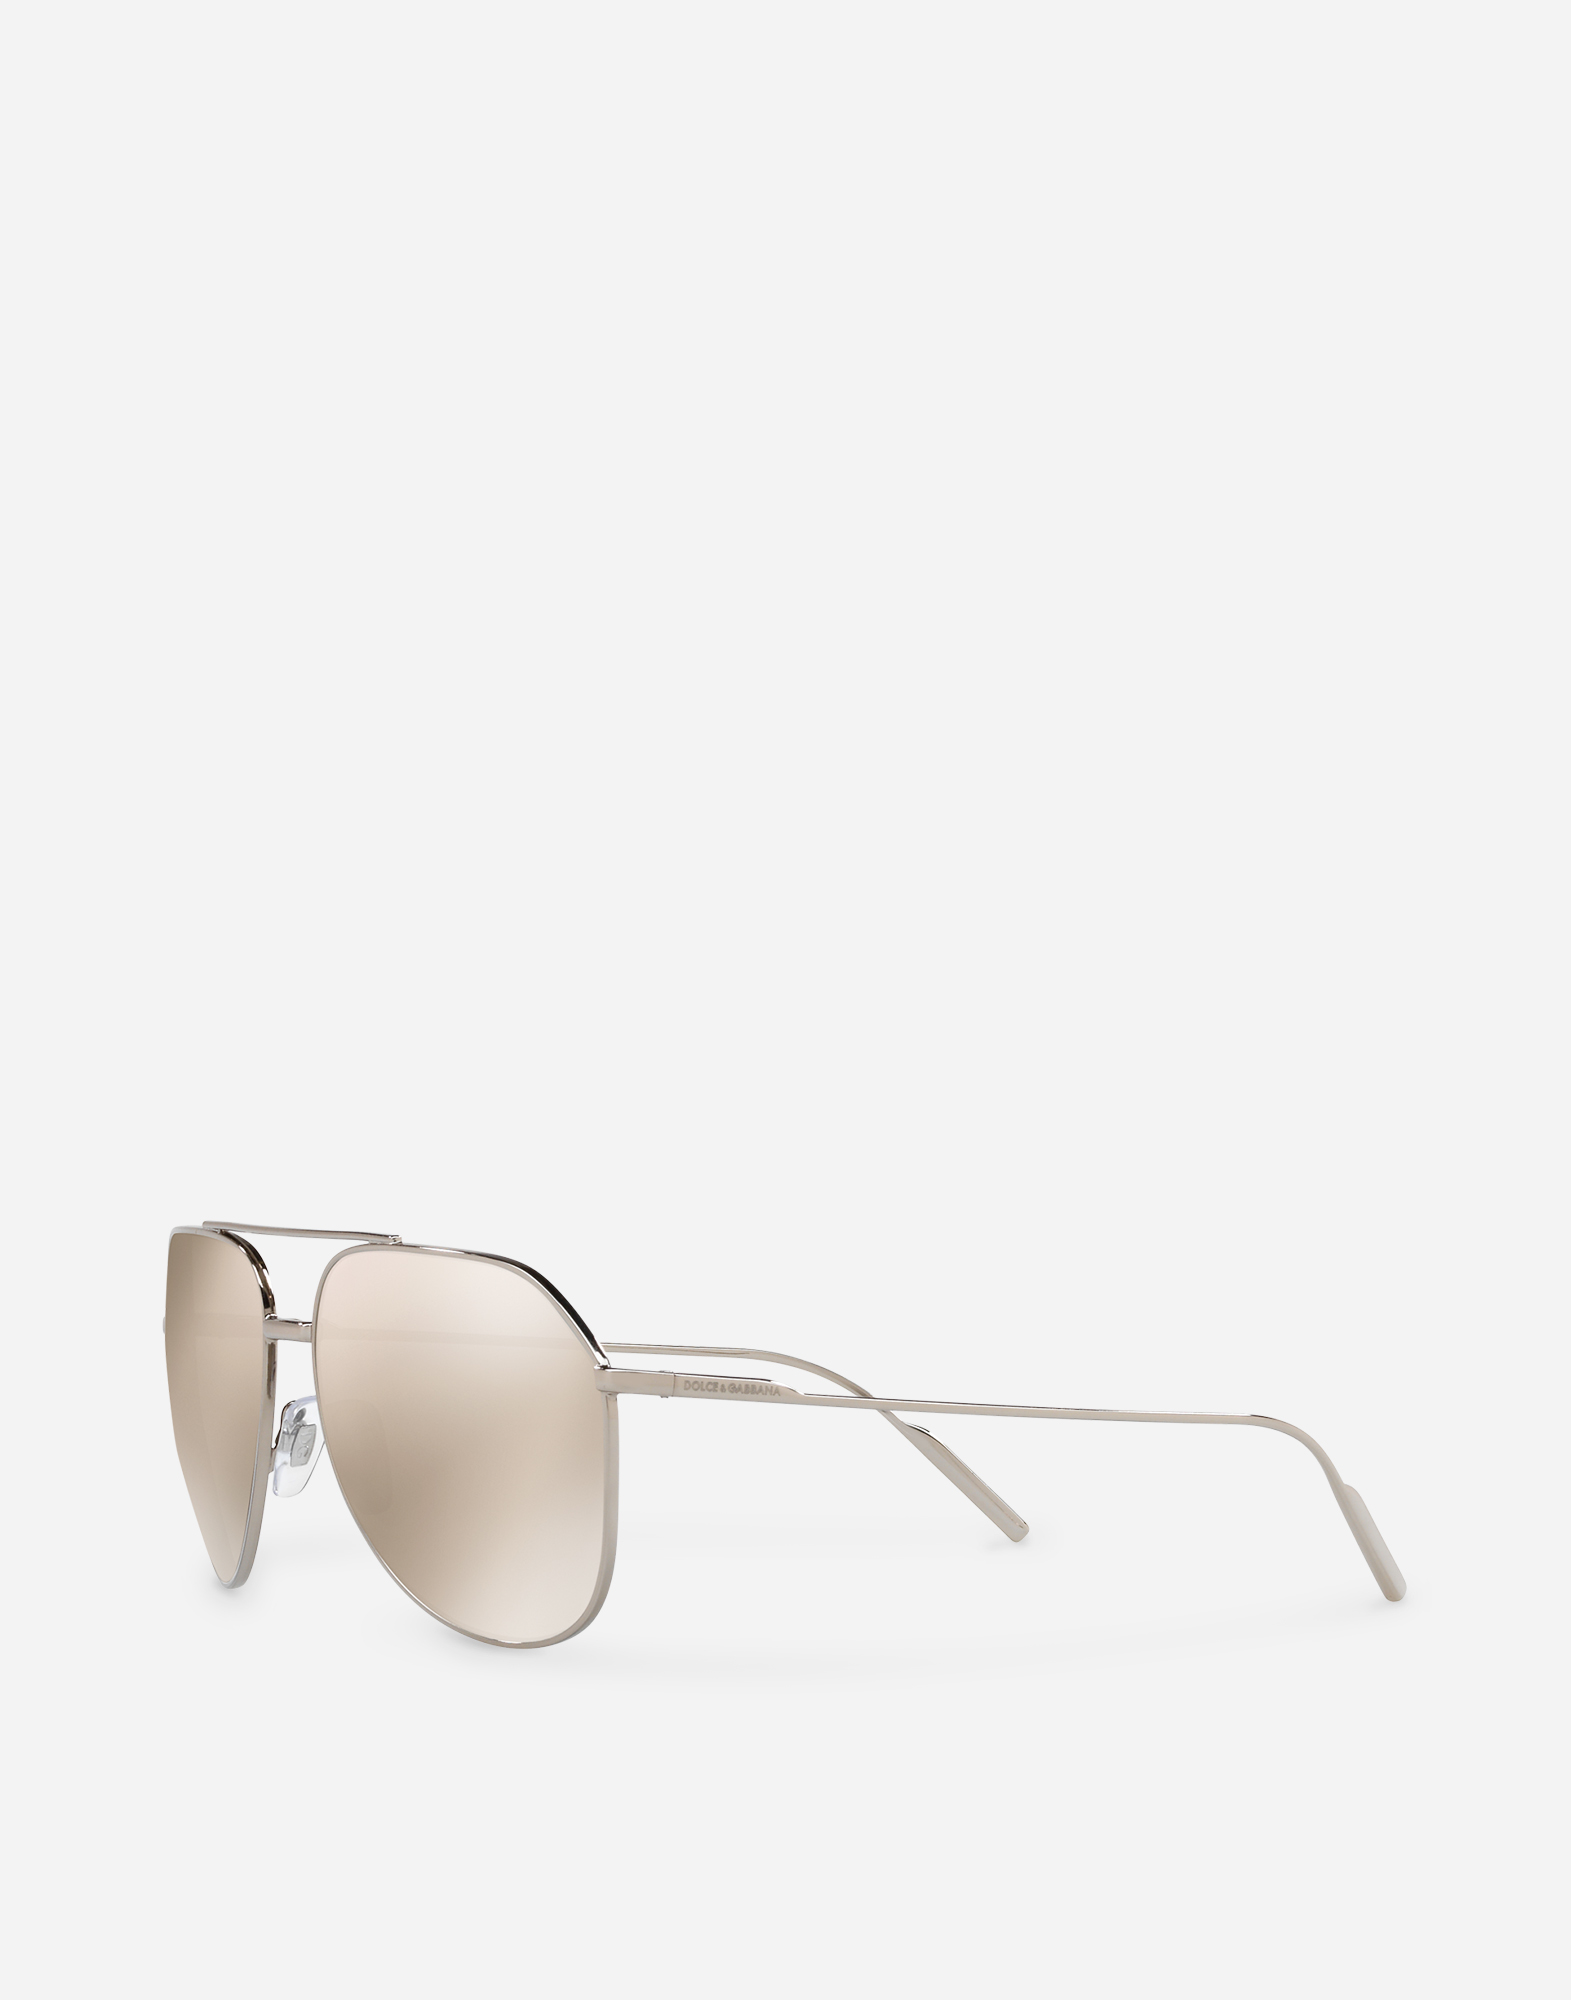 AVIATOR SUNGLASSES IN GOLD-PLATED METAL